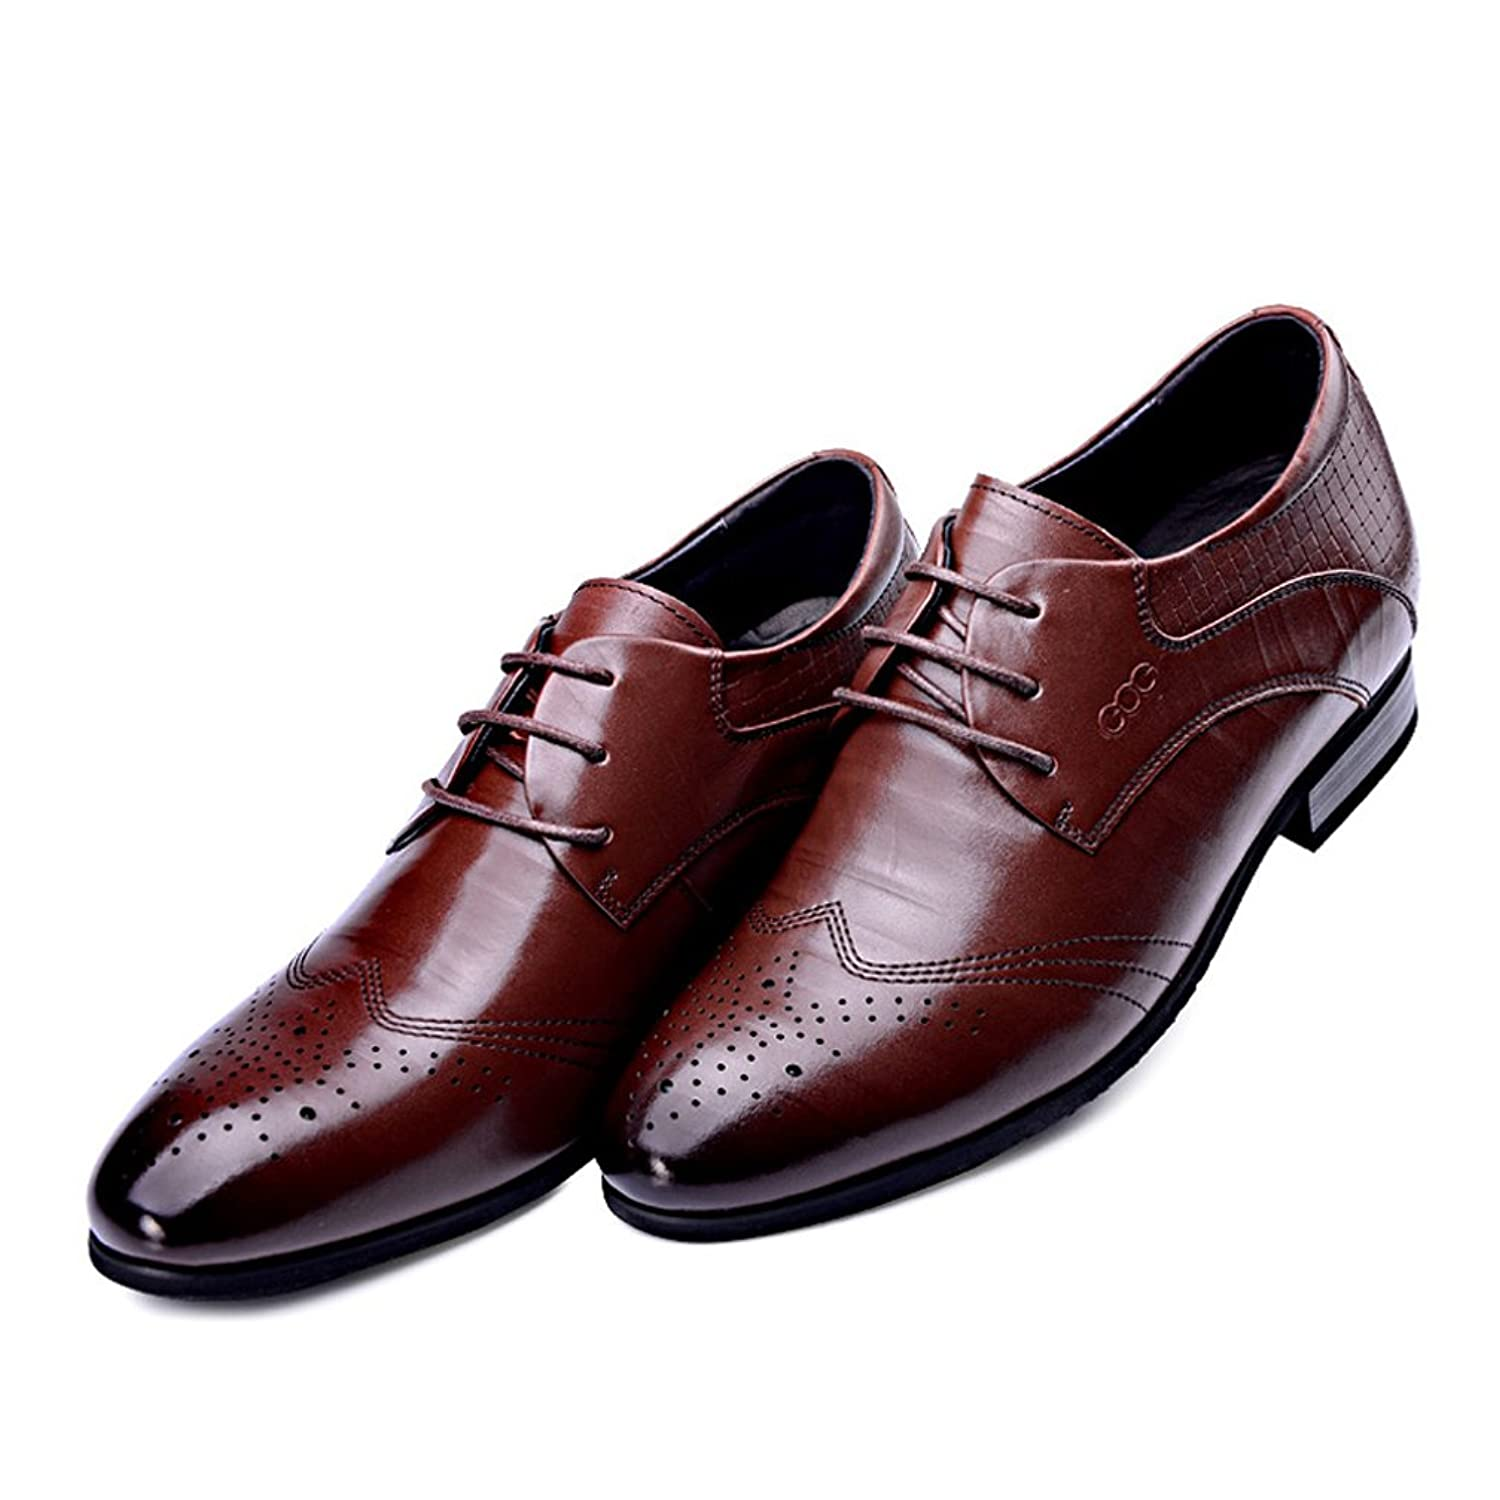 2.36 Inches Taller - Height Increasing Elevator Shoes (Brown Business Dress Shoes)